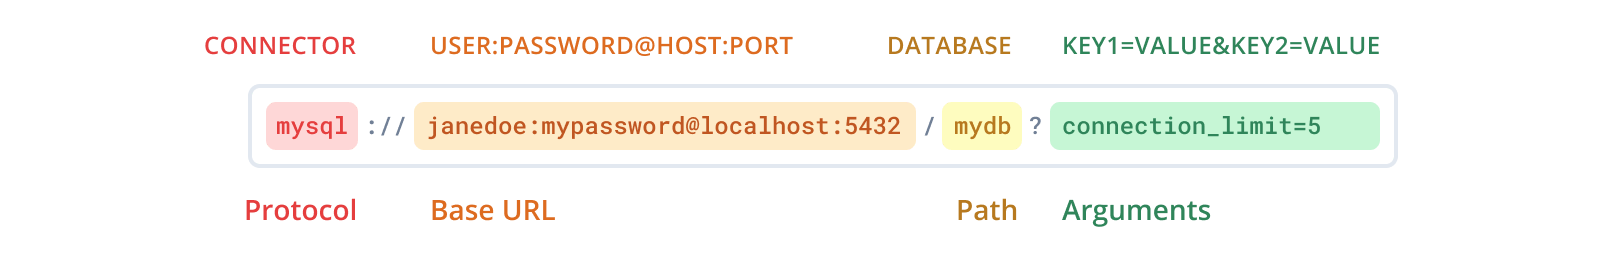 Structure of the MySQL connection URL